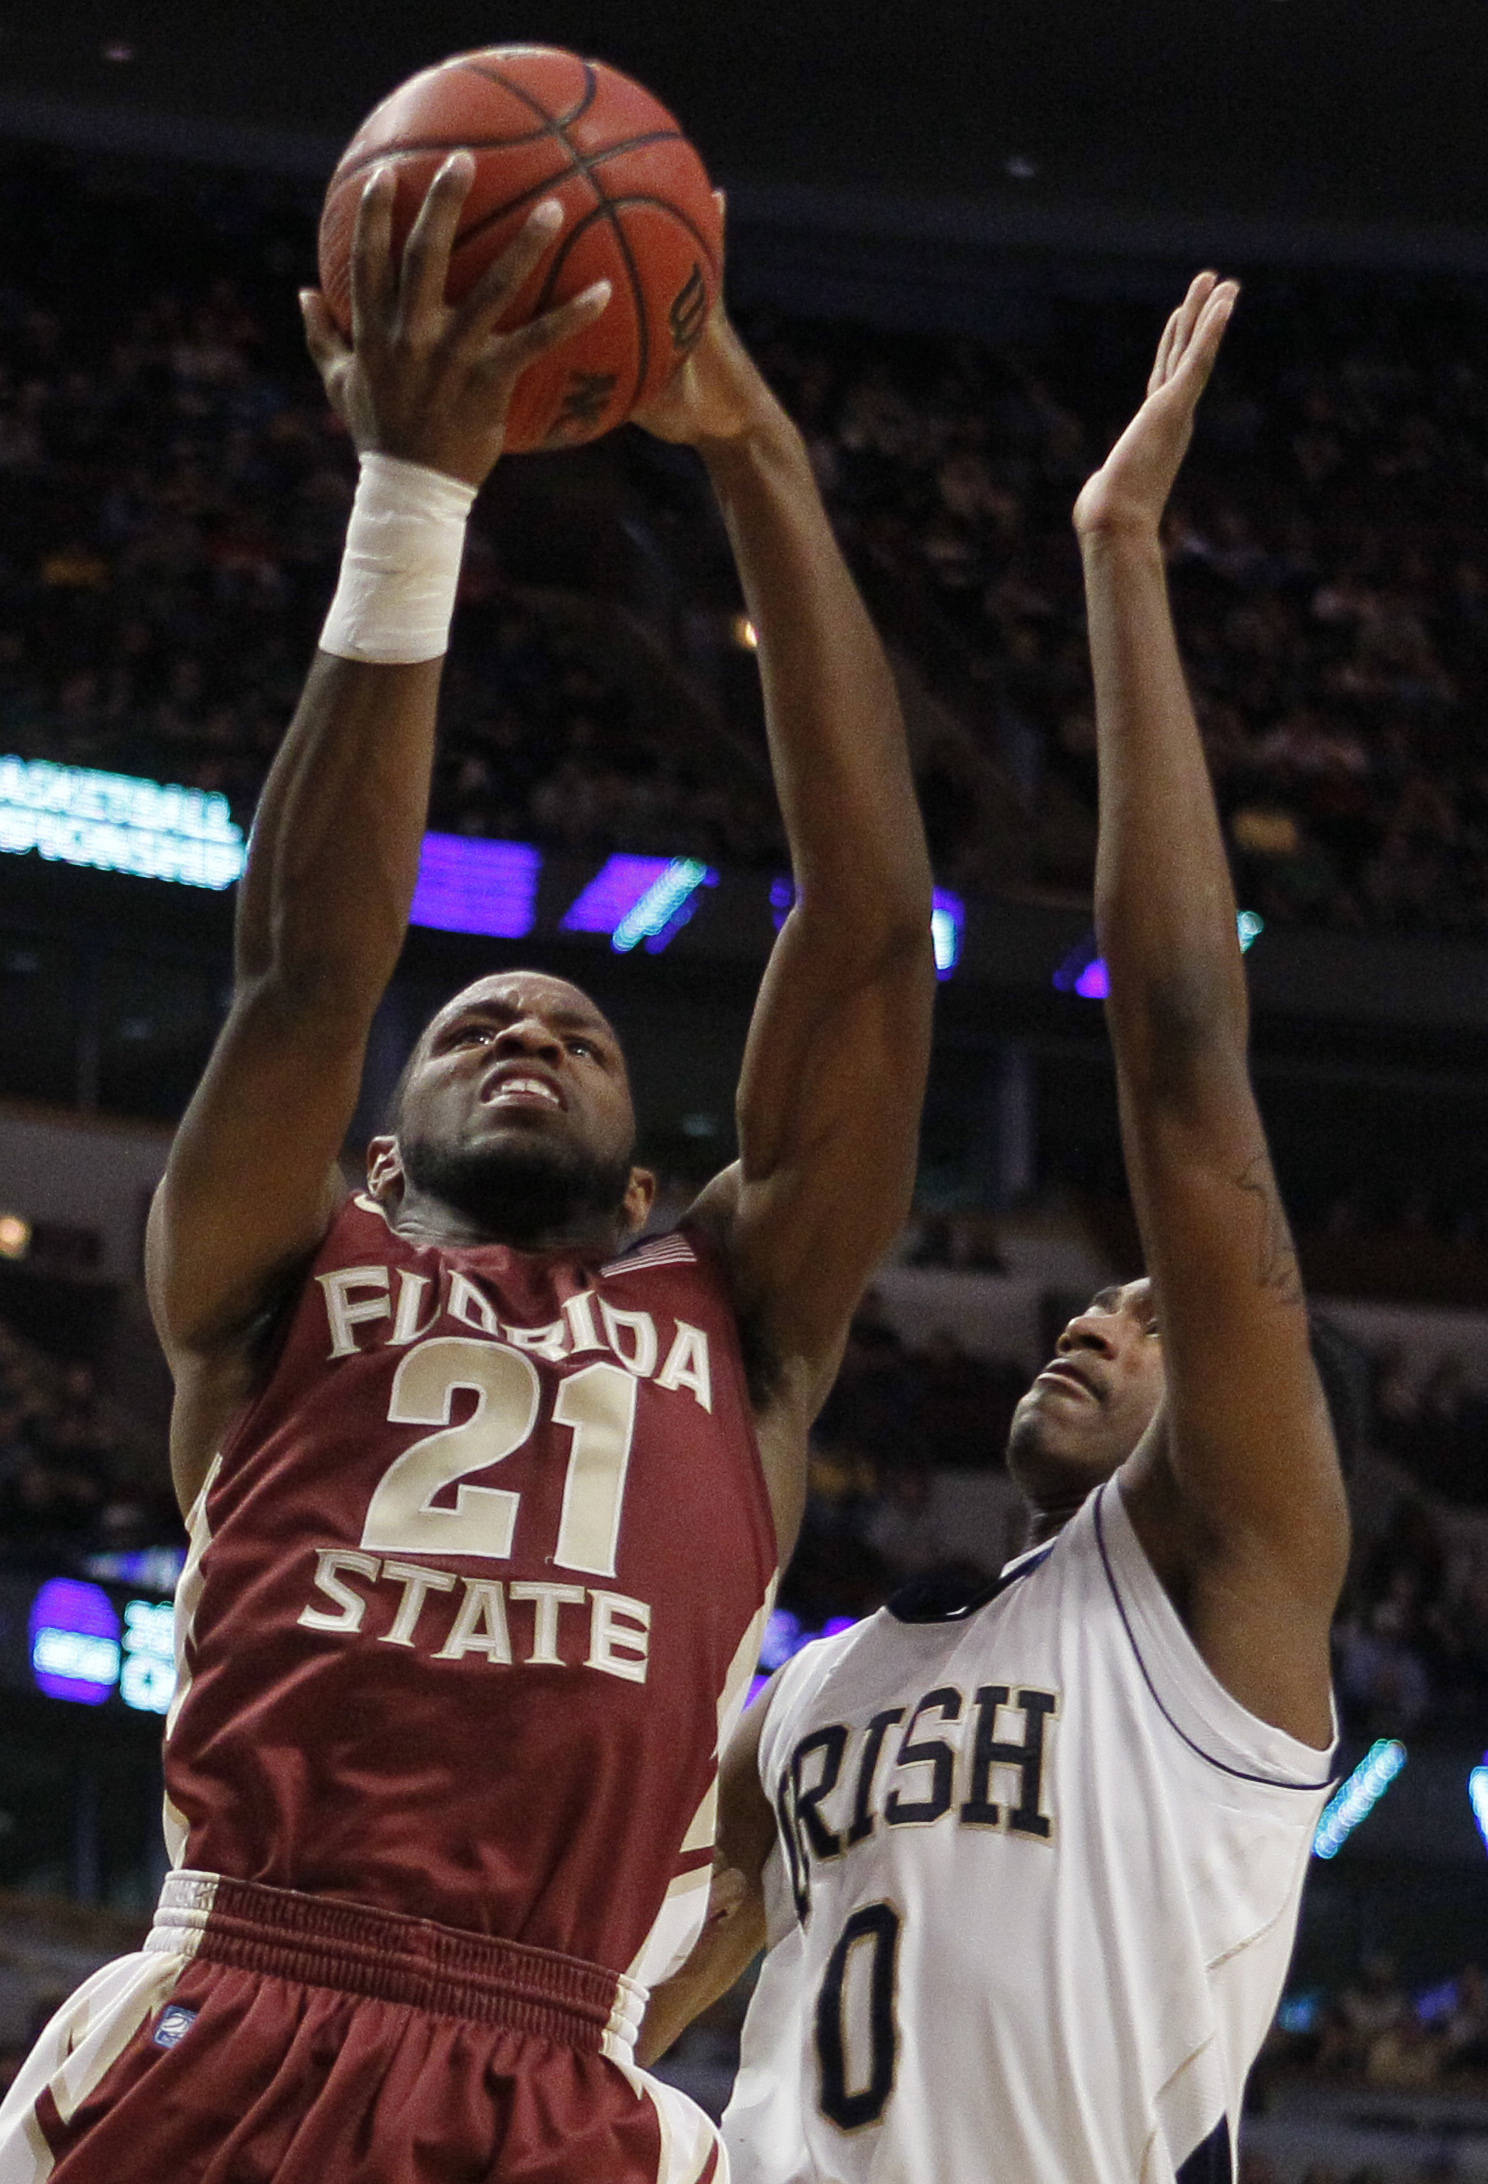 Florida State guard Michael Snaer (21) goes up for a basket against Notre Dame guard Eric Atkins (0). (AP Photo/Charles Rex Arbogast)